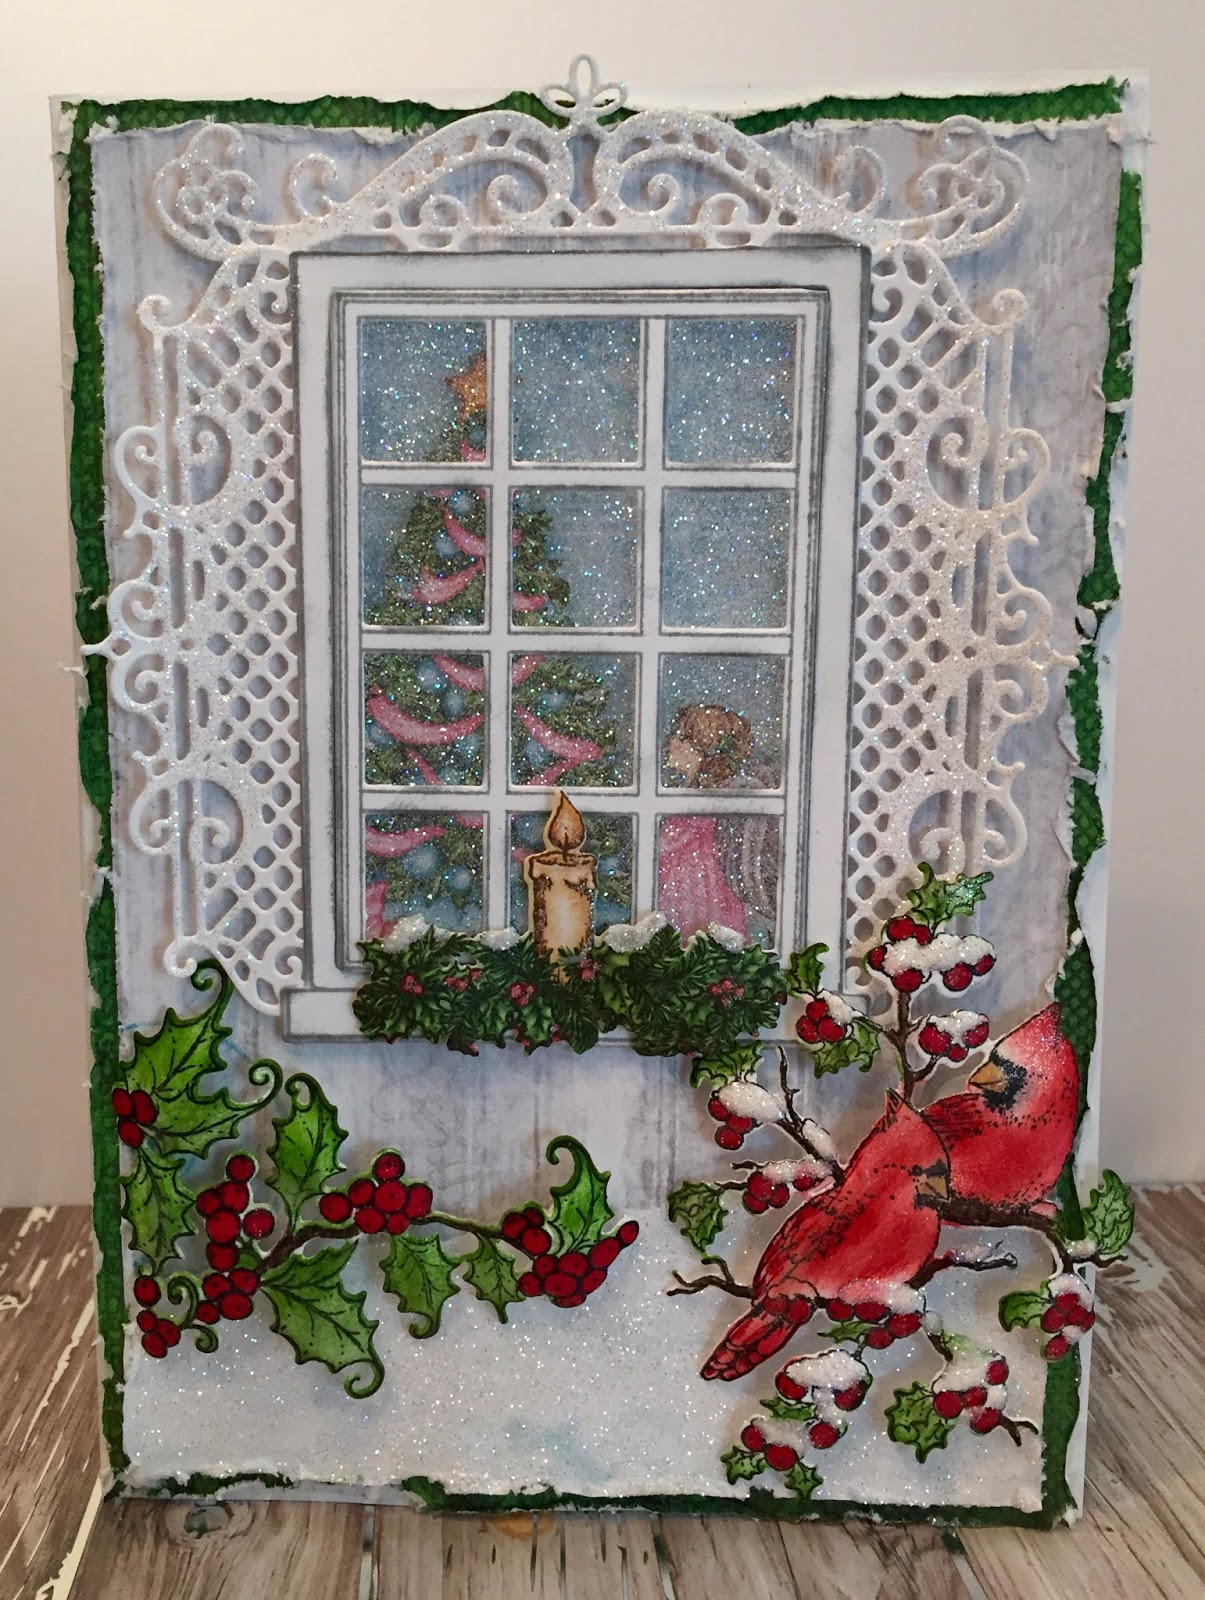 Christmas window box filler - Come Along With Us As We Set The Scene For A Tranquil Winter S Eve And A Happy Holiday Season